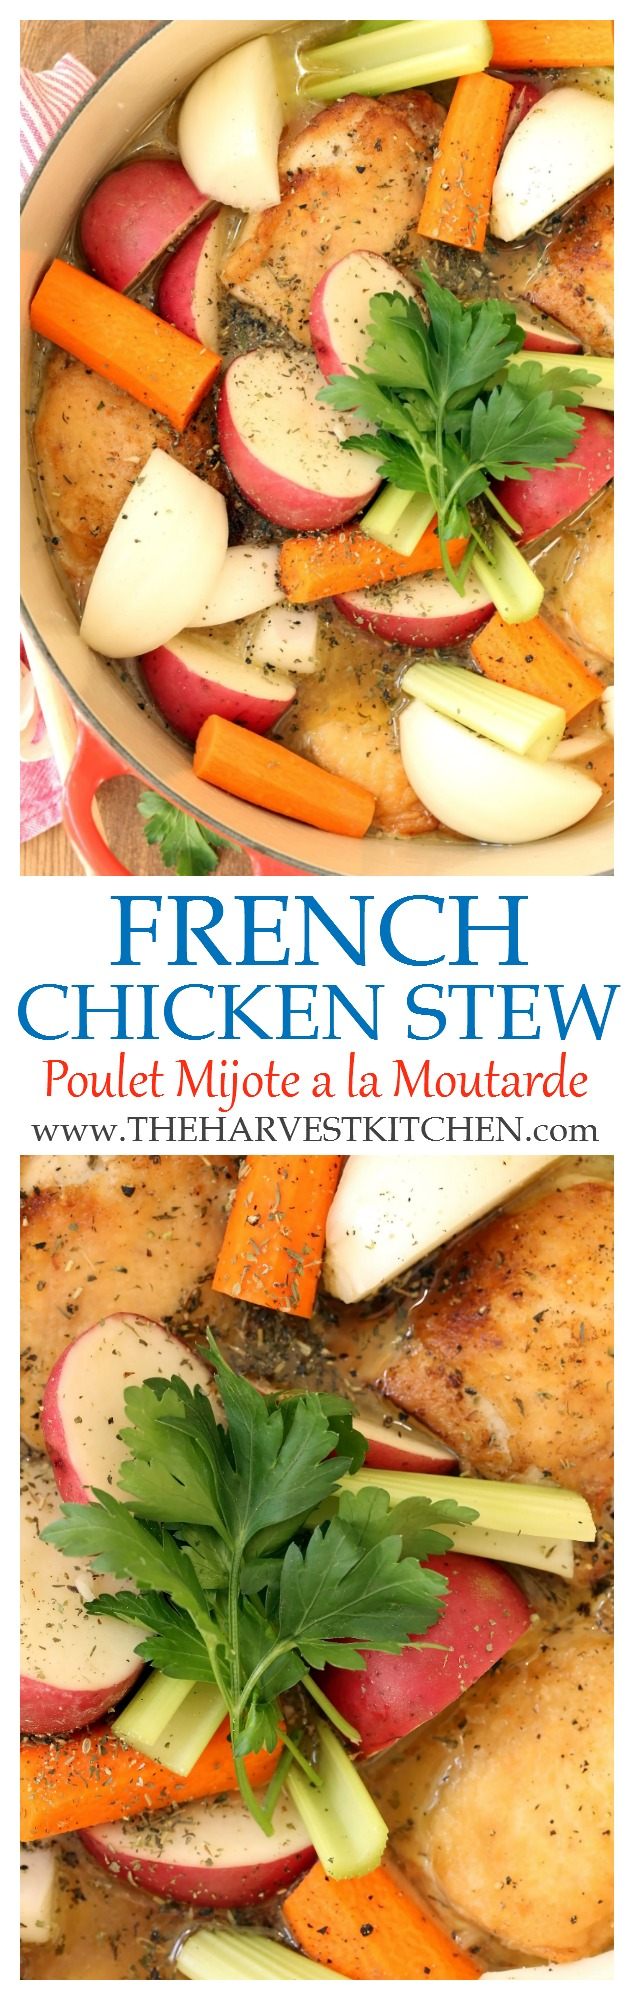 french-chicken-stew